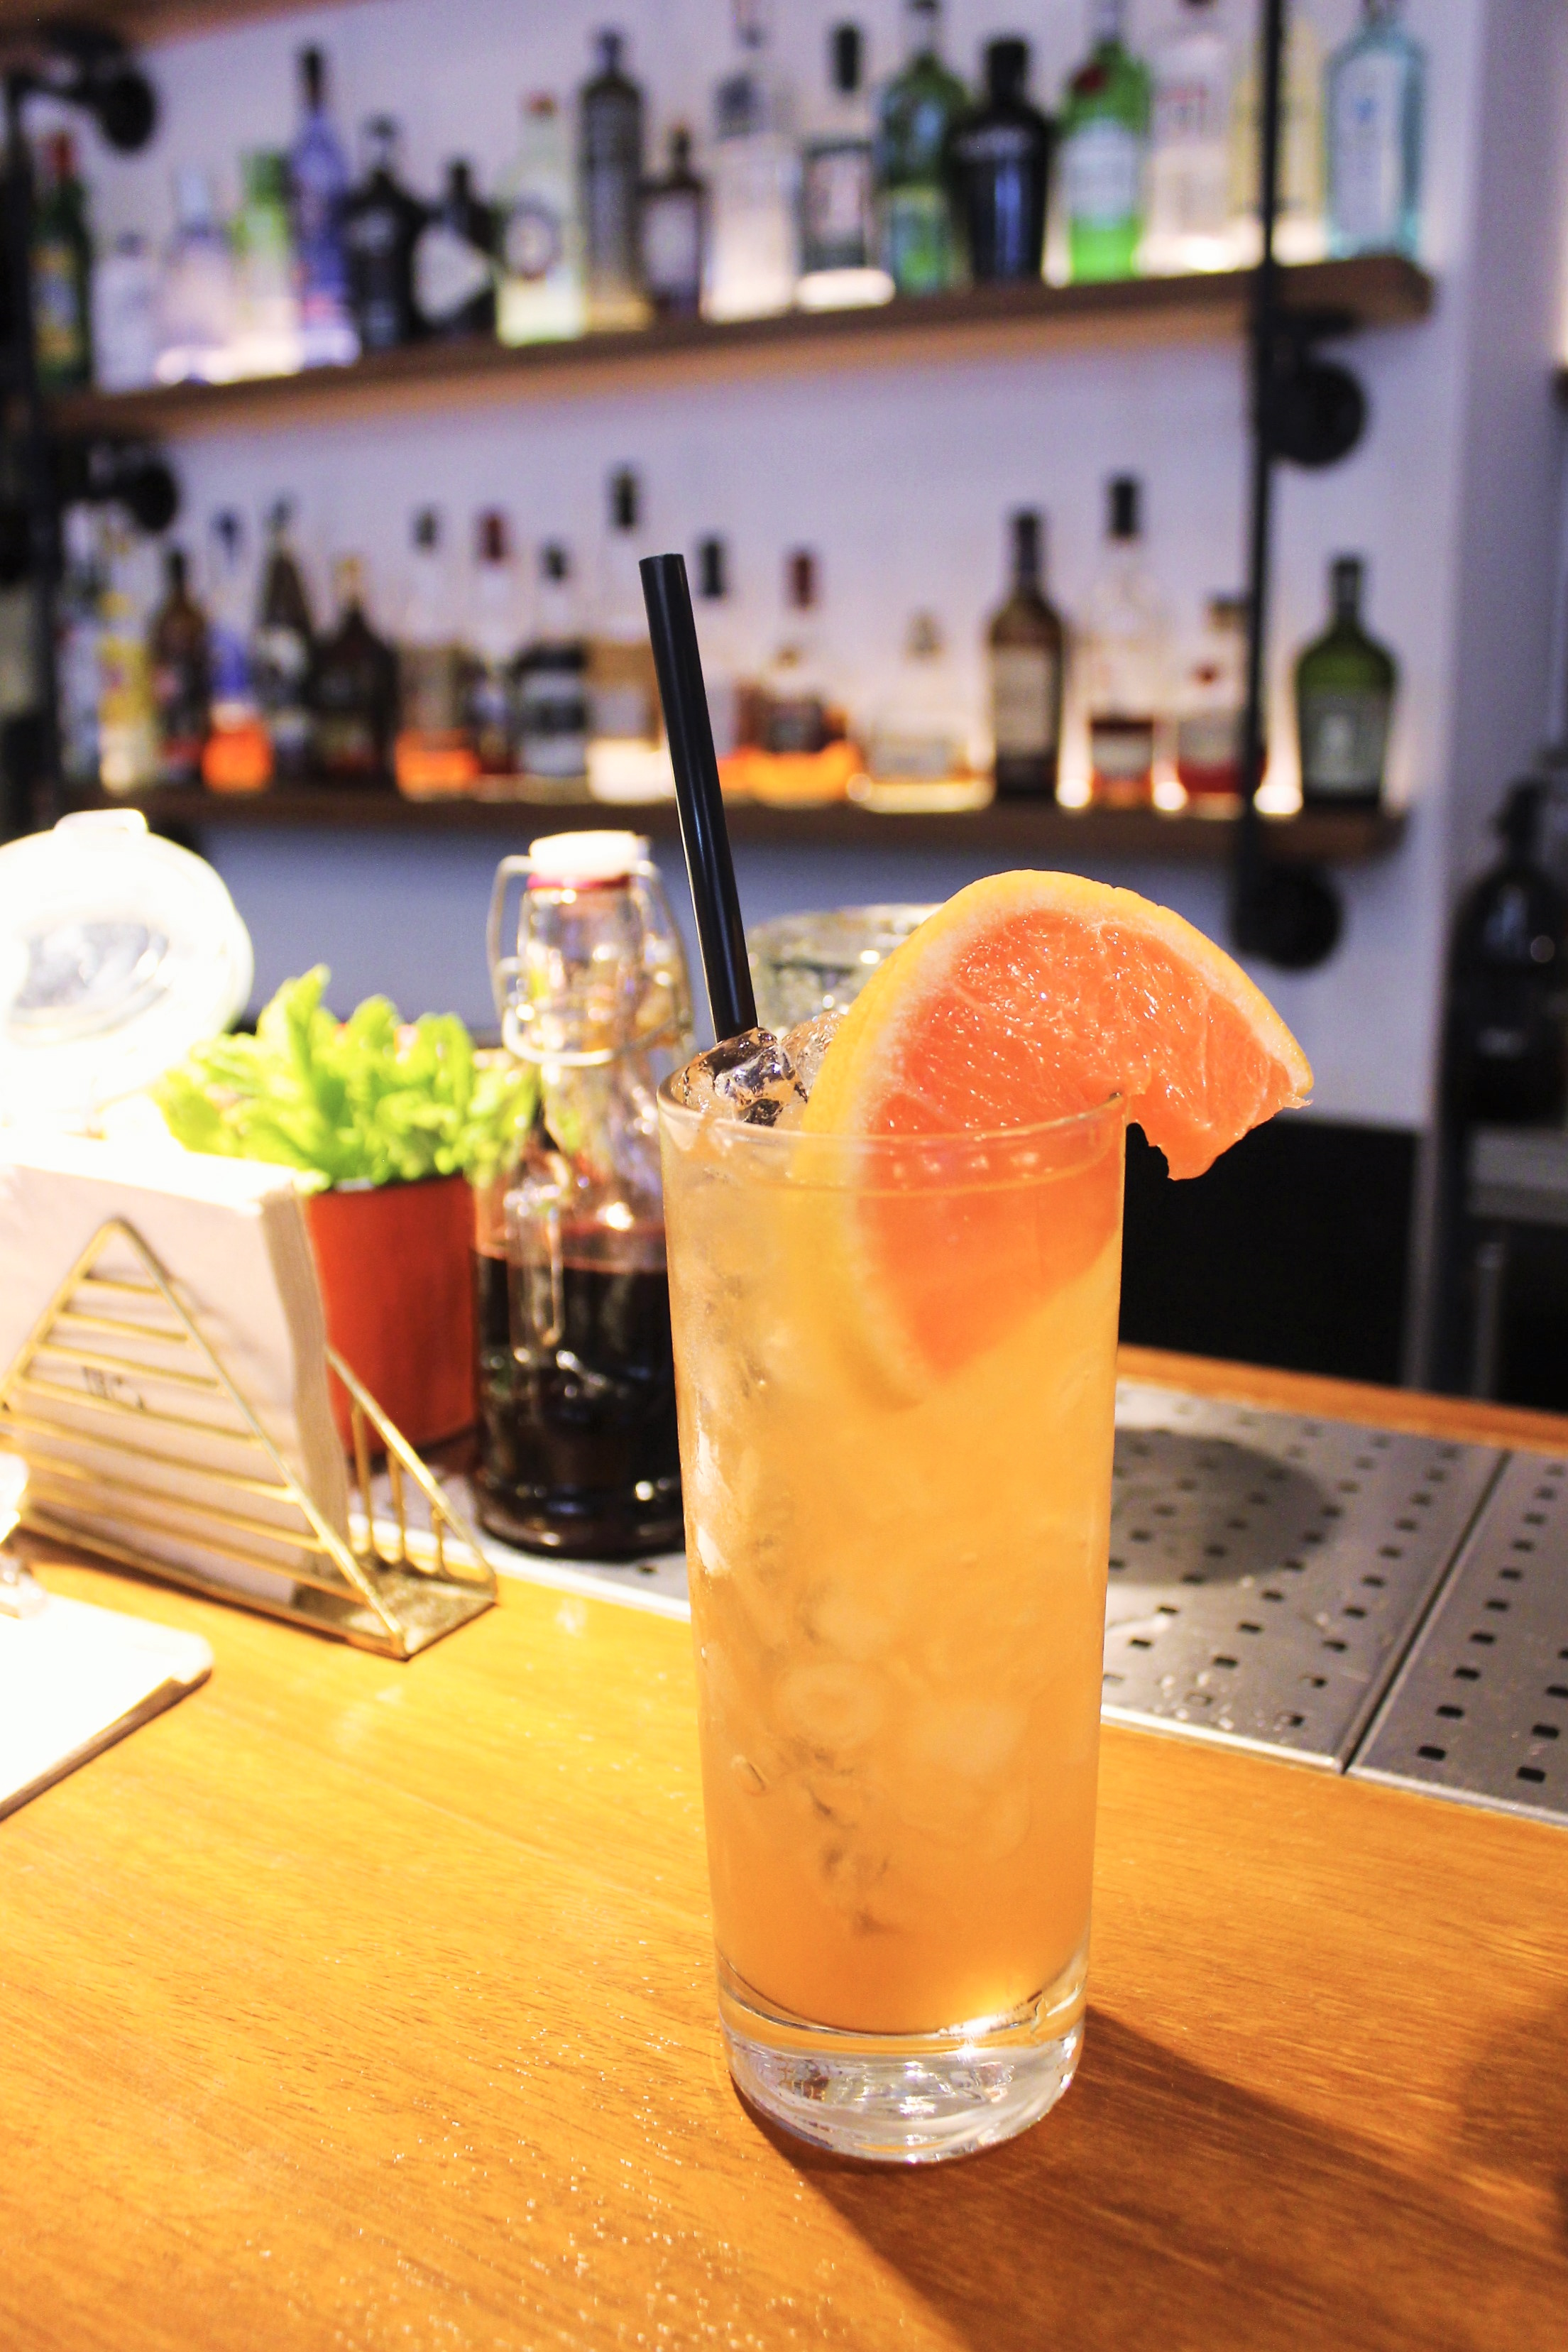 Dutch-Courage-Cocktail-Genever-Gin-Aperol-and-Grapefruit-at-Pax-49-in-Barcelona.jpg